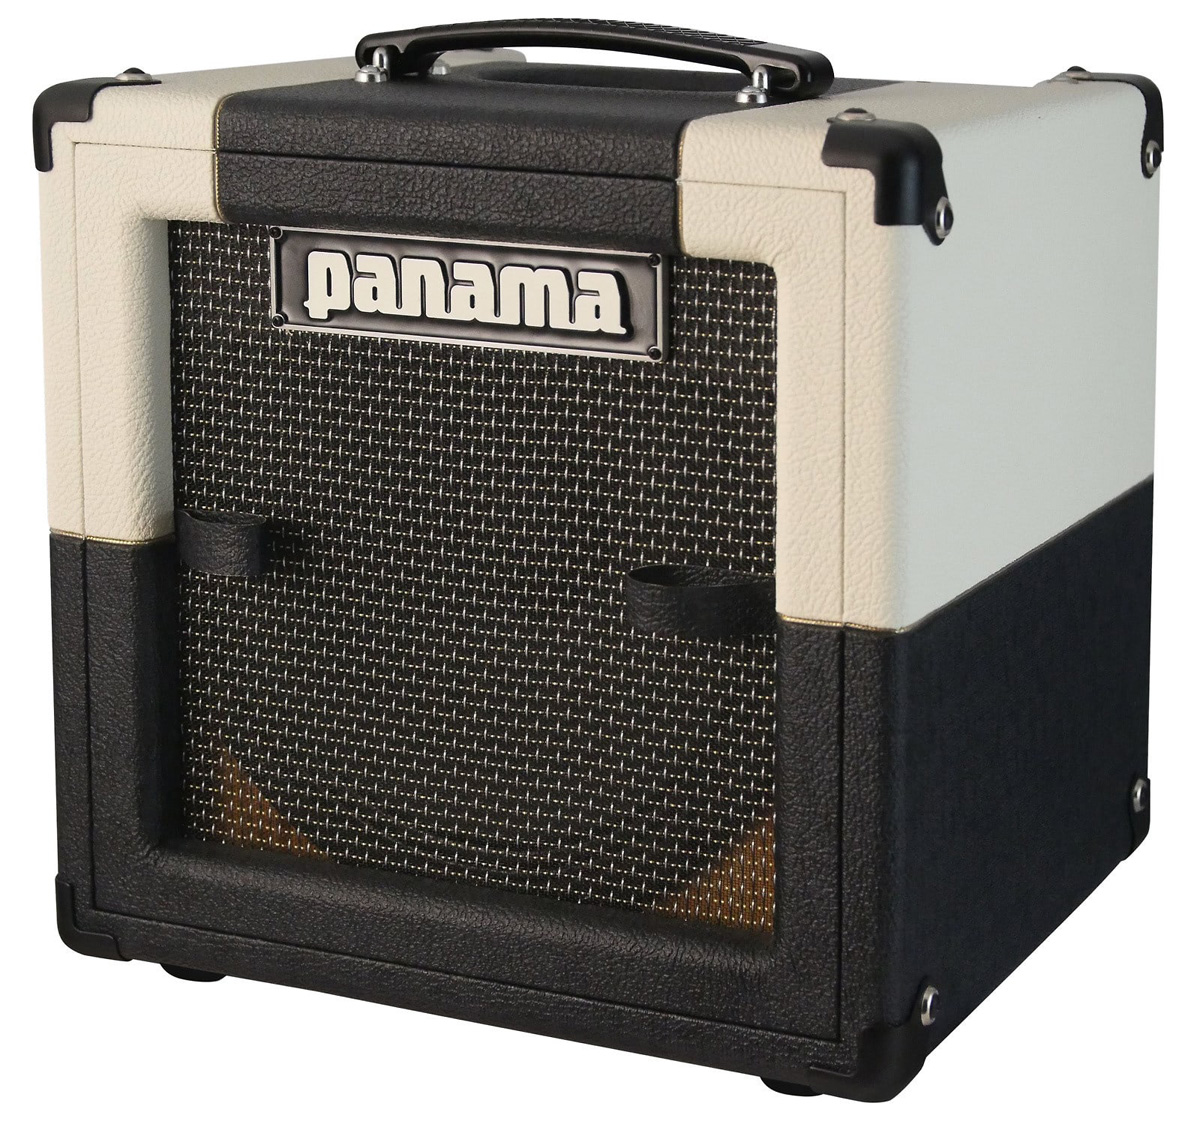 panama conqueror 5 watt mini hand wired tube guitar 1x10 combo amp white black ebay. Black Bedroom Furniture Sets. Home Design Ideas